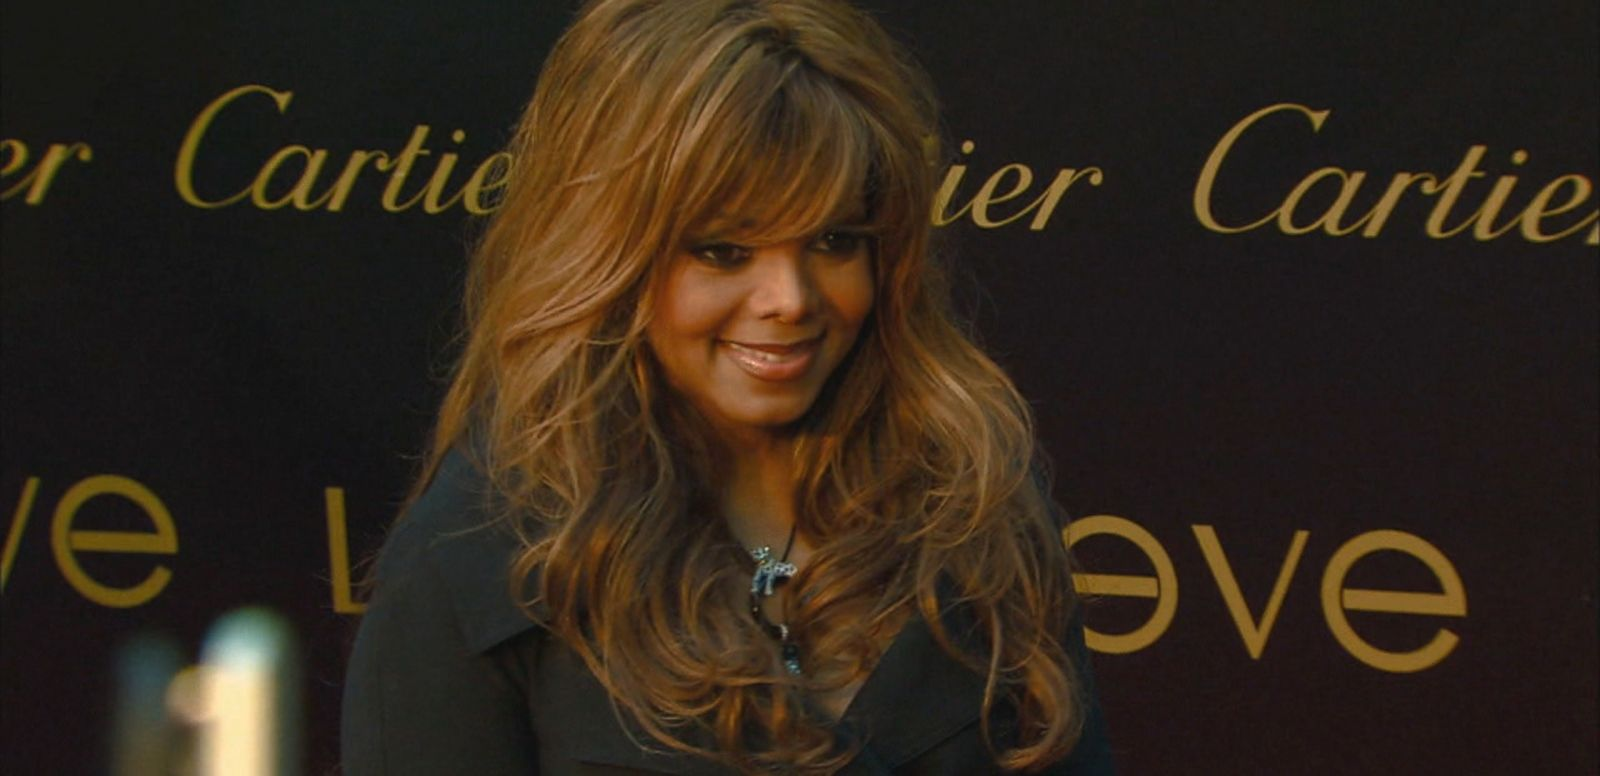 VIDEO: The singer is due to launch her European tour in late-March.